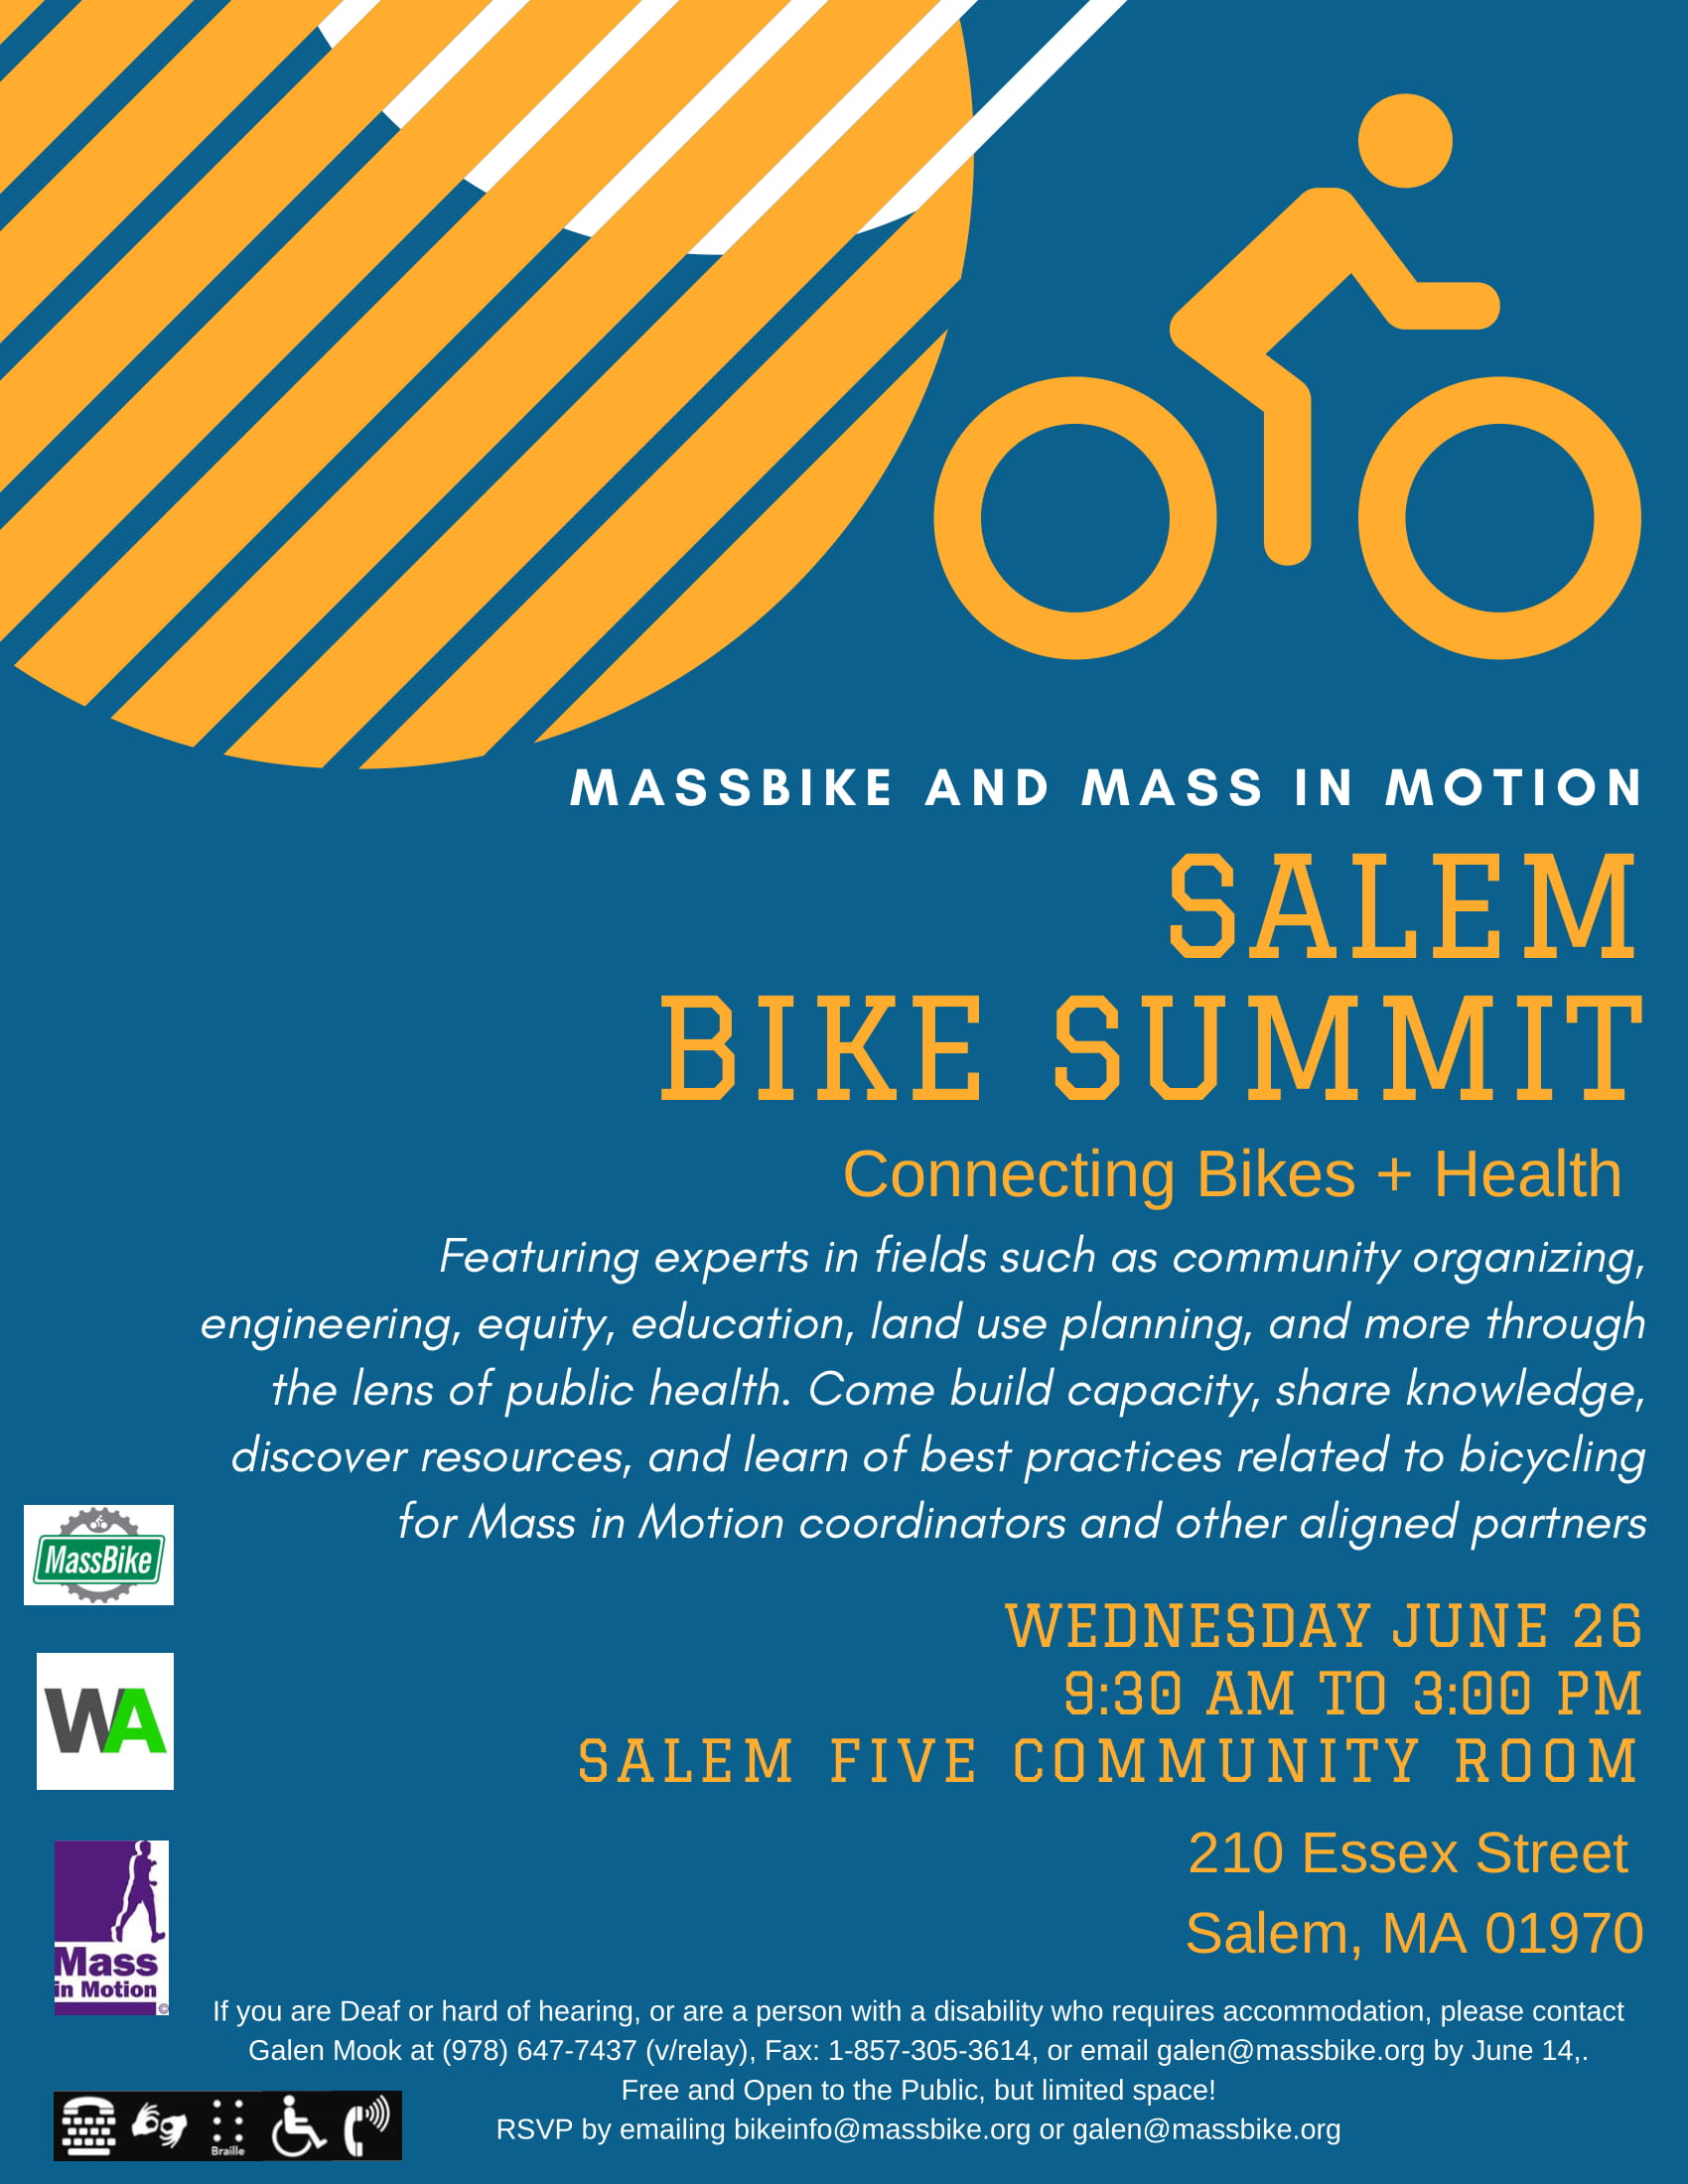 Salem_Bike_Summit_Flyer-1.jpg